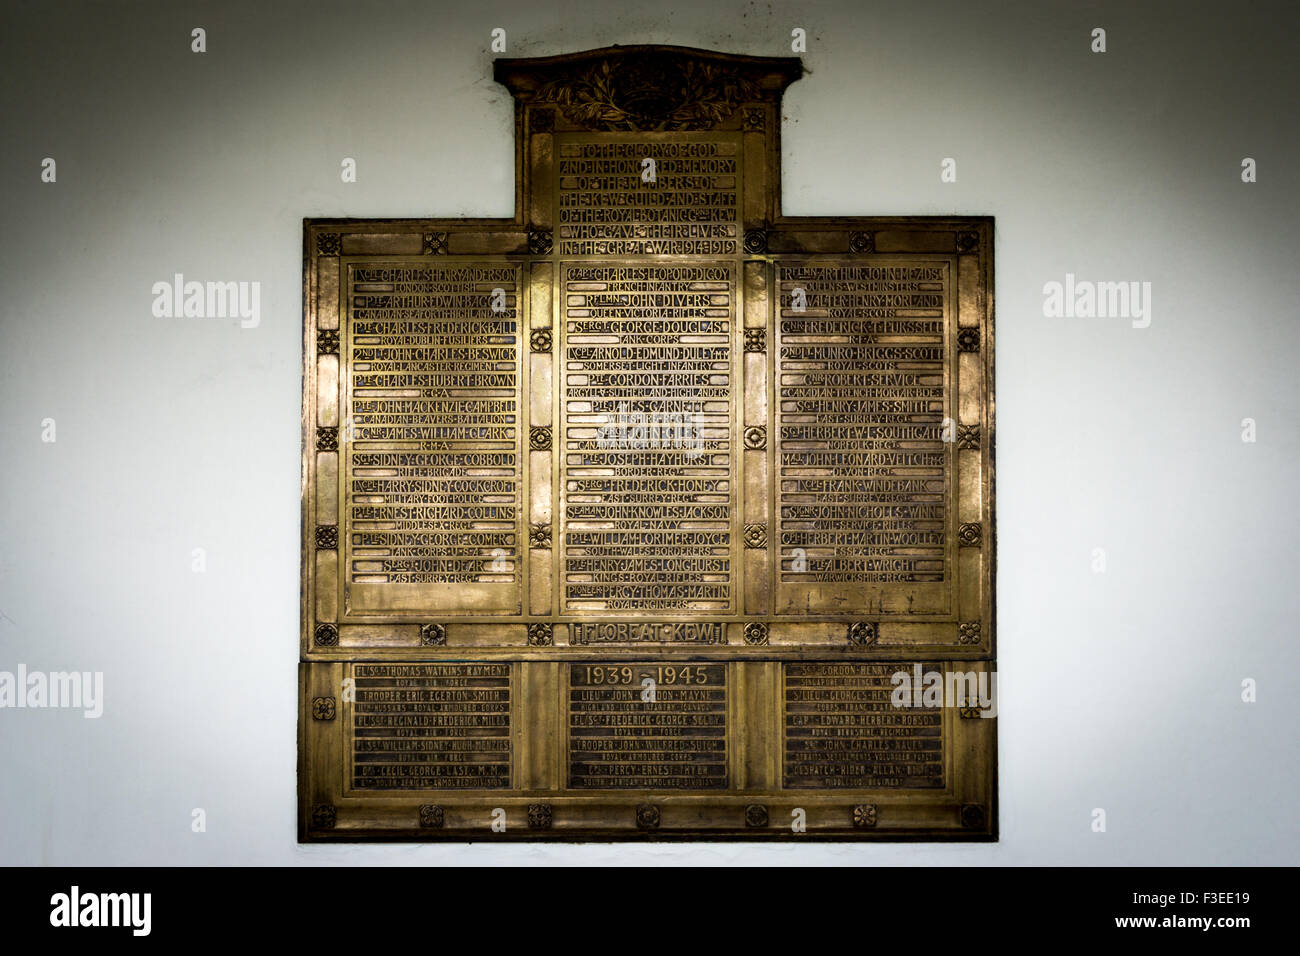 A memorial plaque commemorating the dead of the two world wars. It is a bronze tablet designed by Sir Robert Lorimer - Stock Image